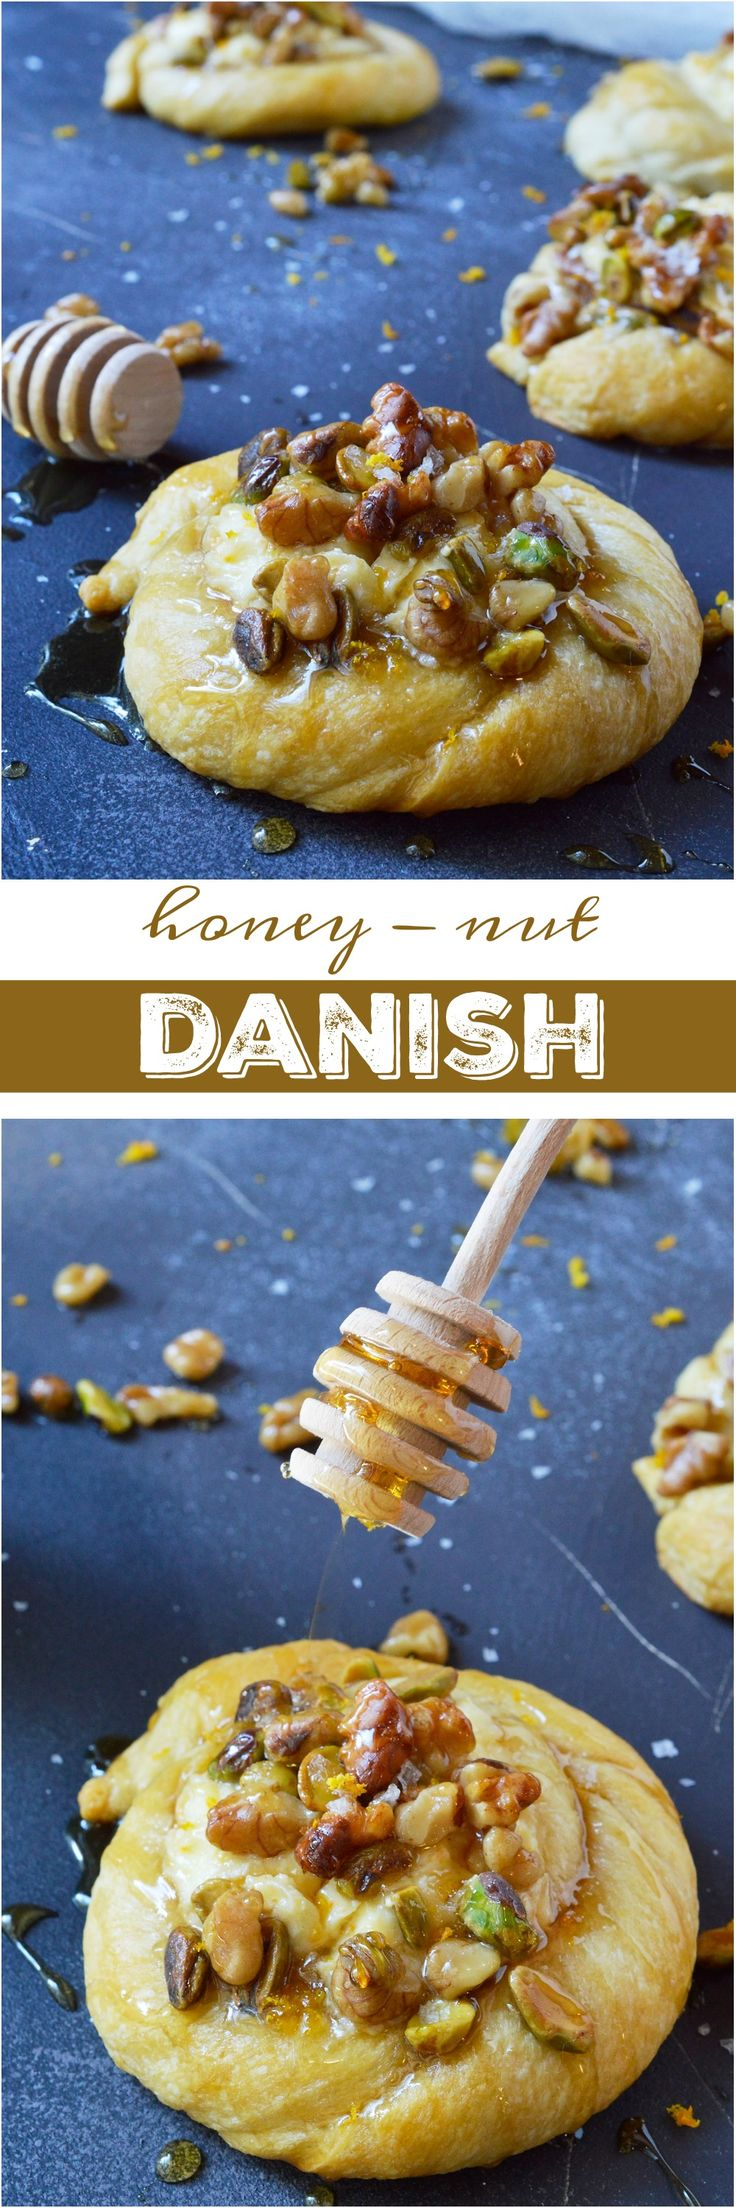 Do you want to make an amazing breakfast pastry without all the fuss? This Honey Nut Cream Cheese Danish Recipe is unbelievably simple. Use crescent rolls as a shortcut then fill with orange infused cream cheese, top with honeyed walnuts and pistachios. A cheese danish with flavors inspired by baklava! #ad #RethinkSweet